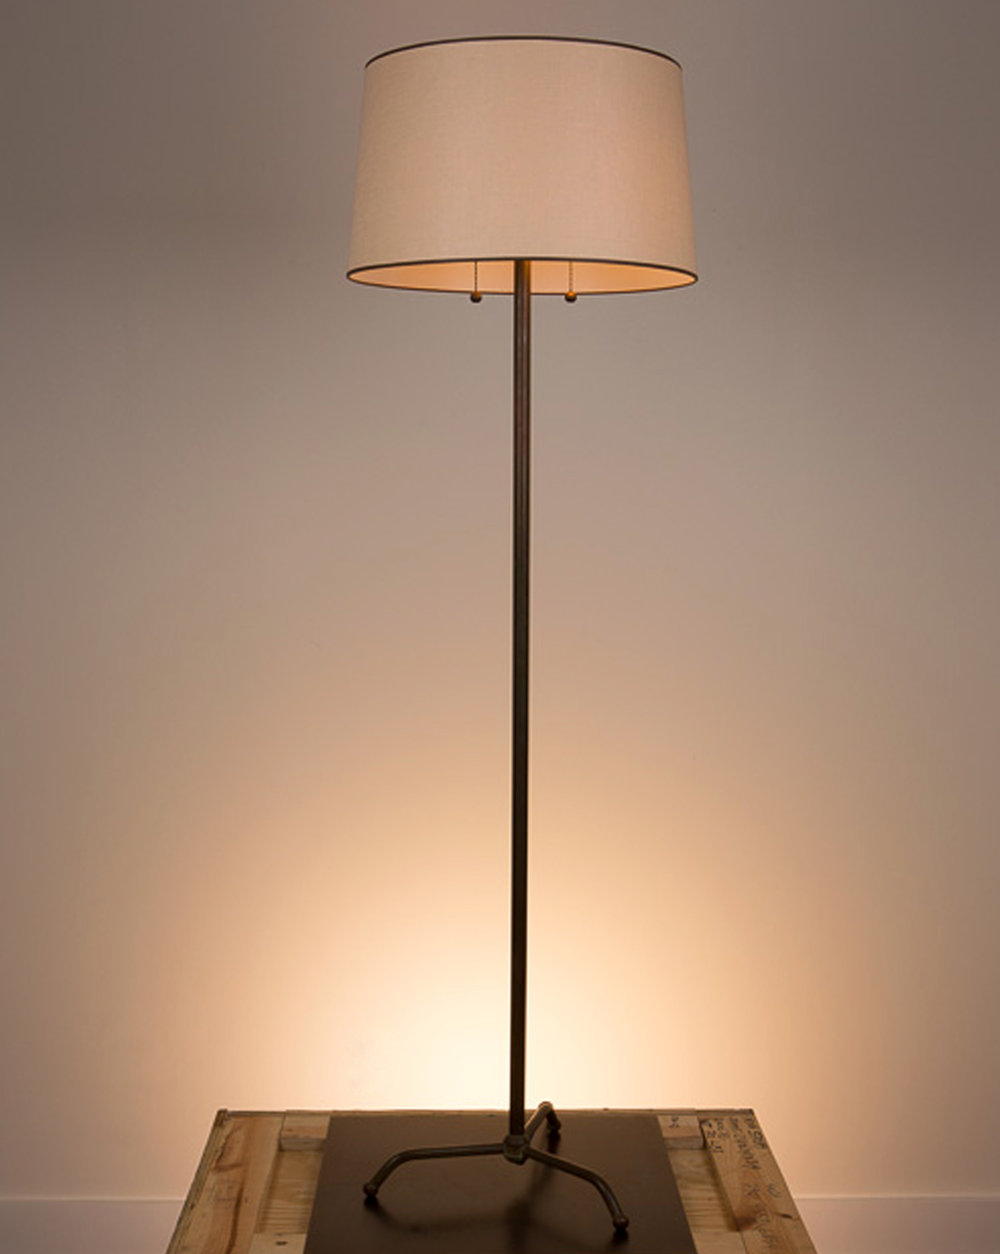 Lucas Floor Lamp  Bronze finish. 738 beige linen shade with chocolate brown trim.